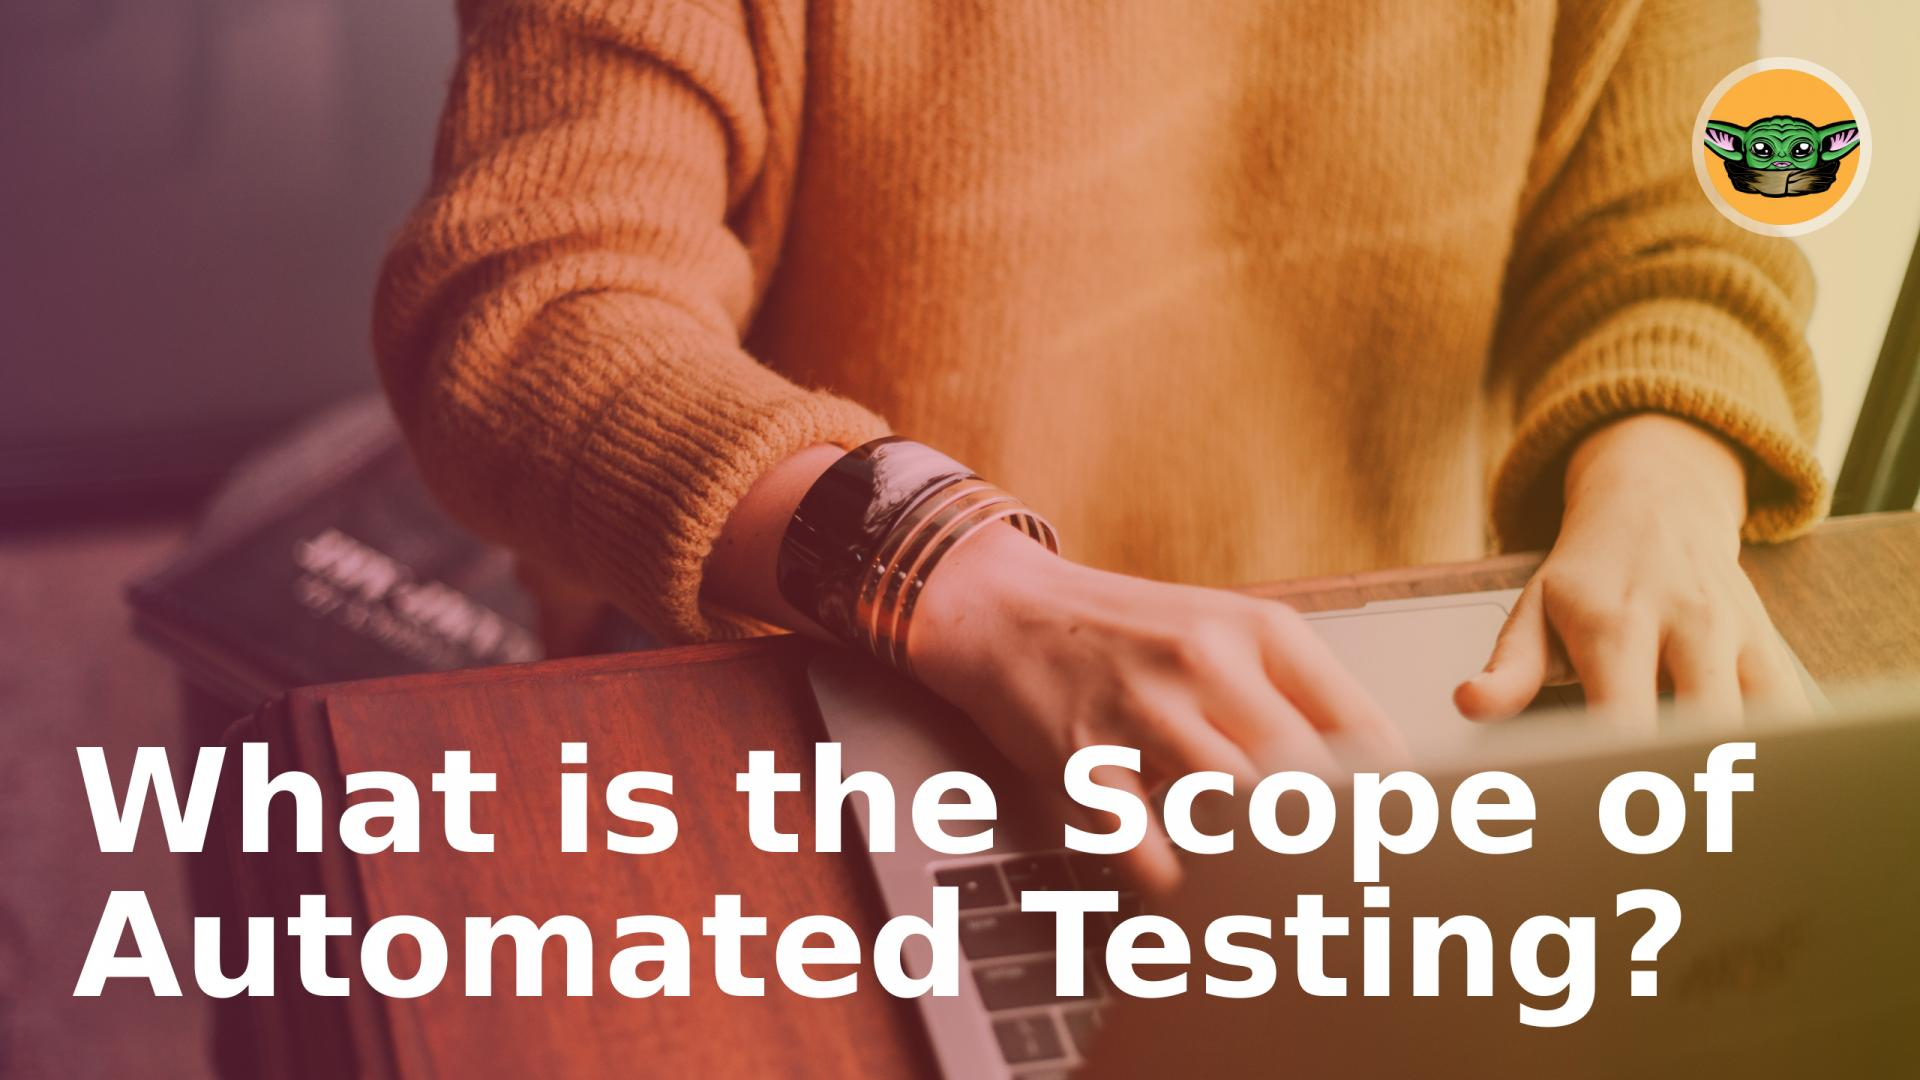 What is the Scope of Automated Testing?